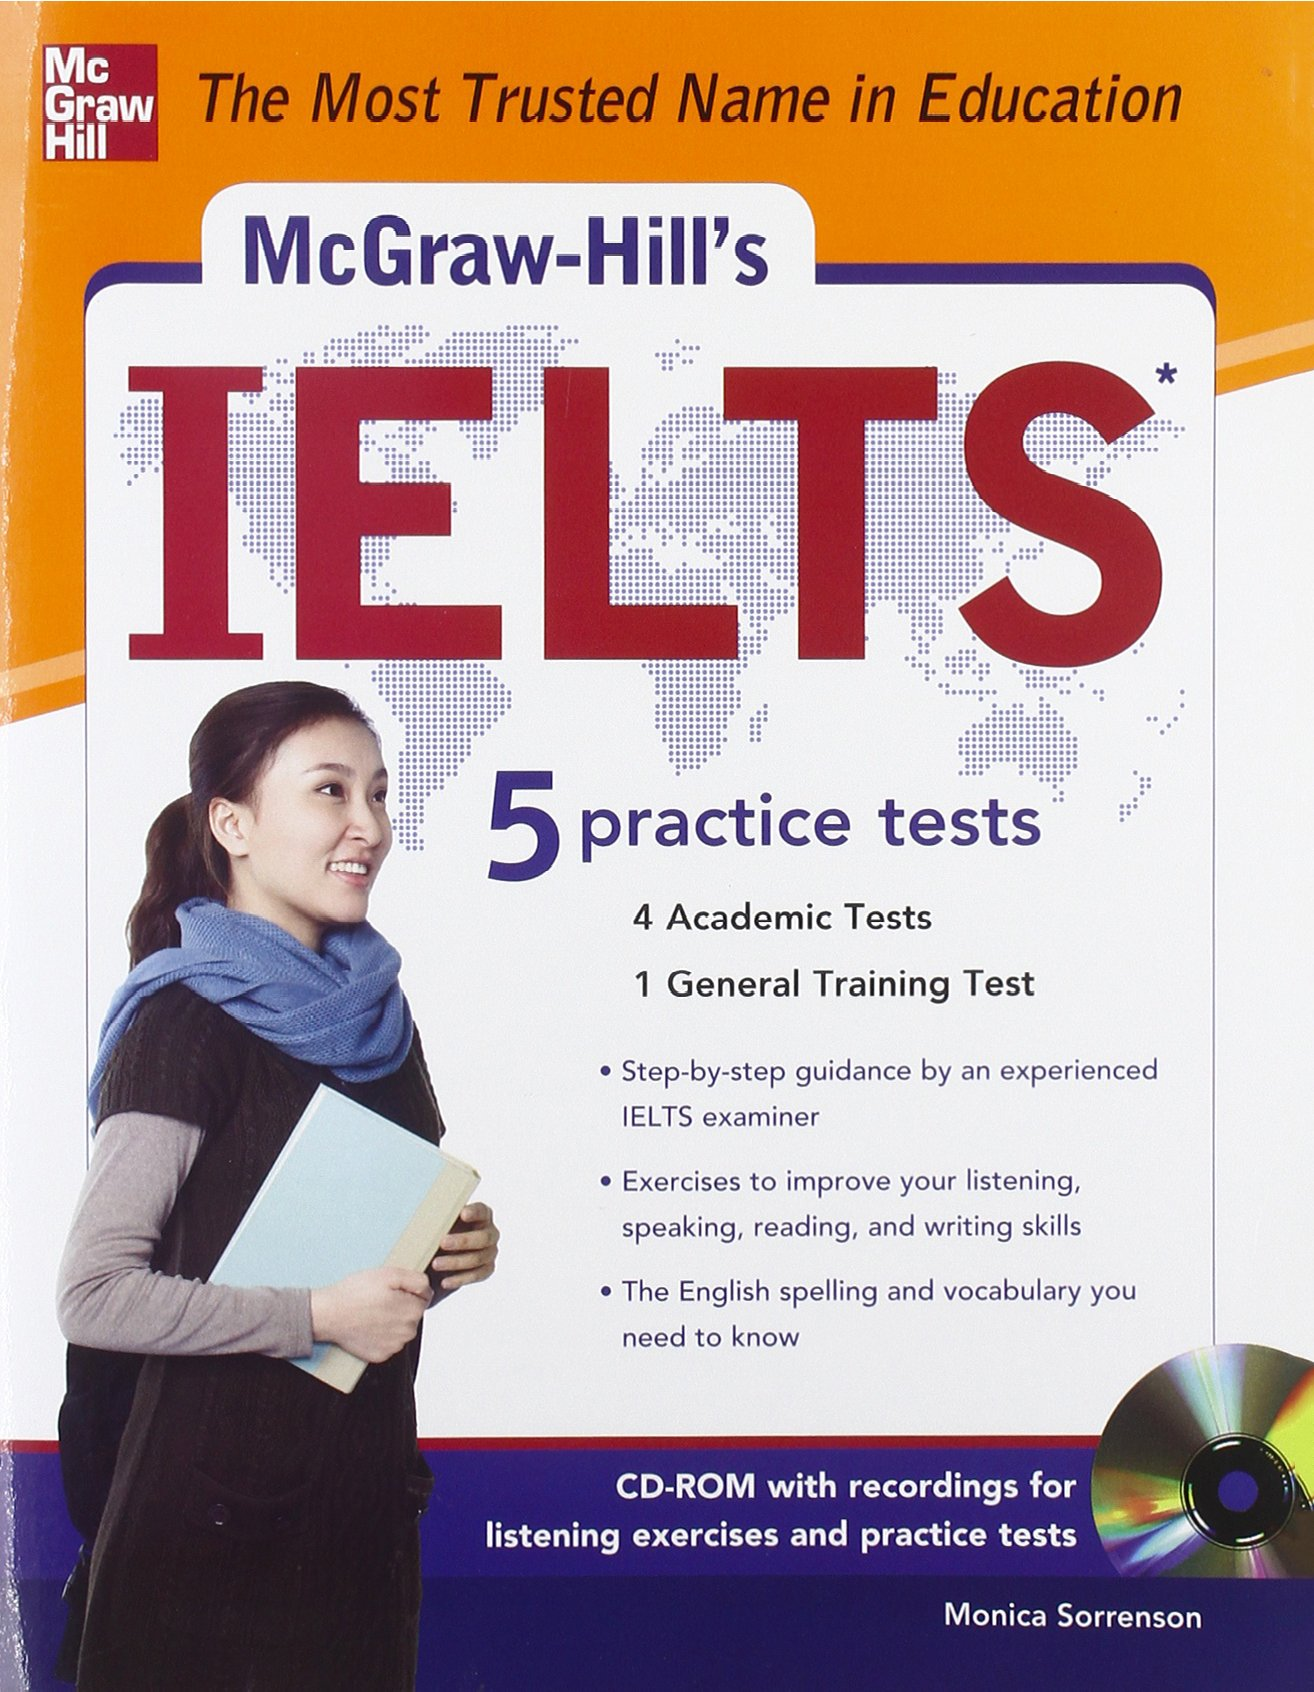 فایل های صوتی کتاب  Mc-GrawHill Education IELTS 5 Practice Tests